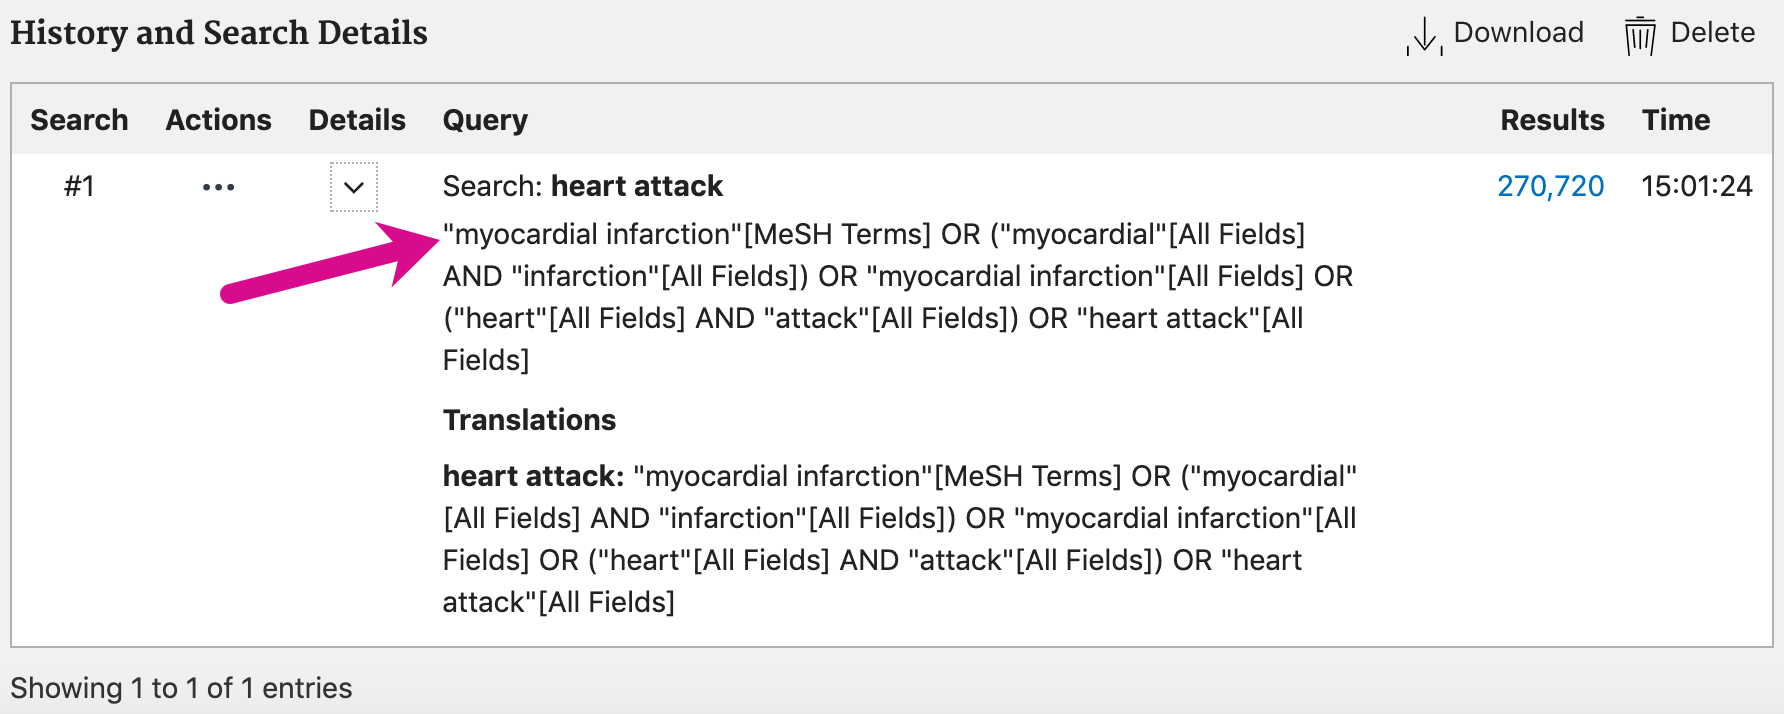 """Screenshot showing search details for the basic search """"heart attack"""""""